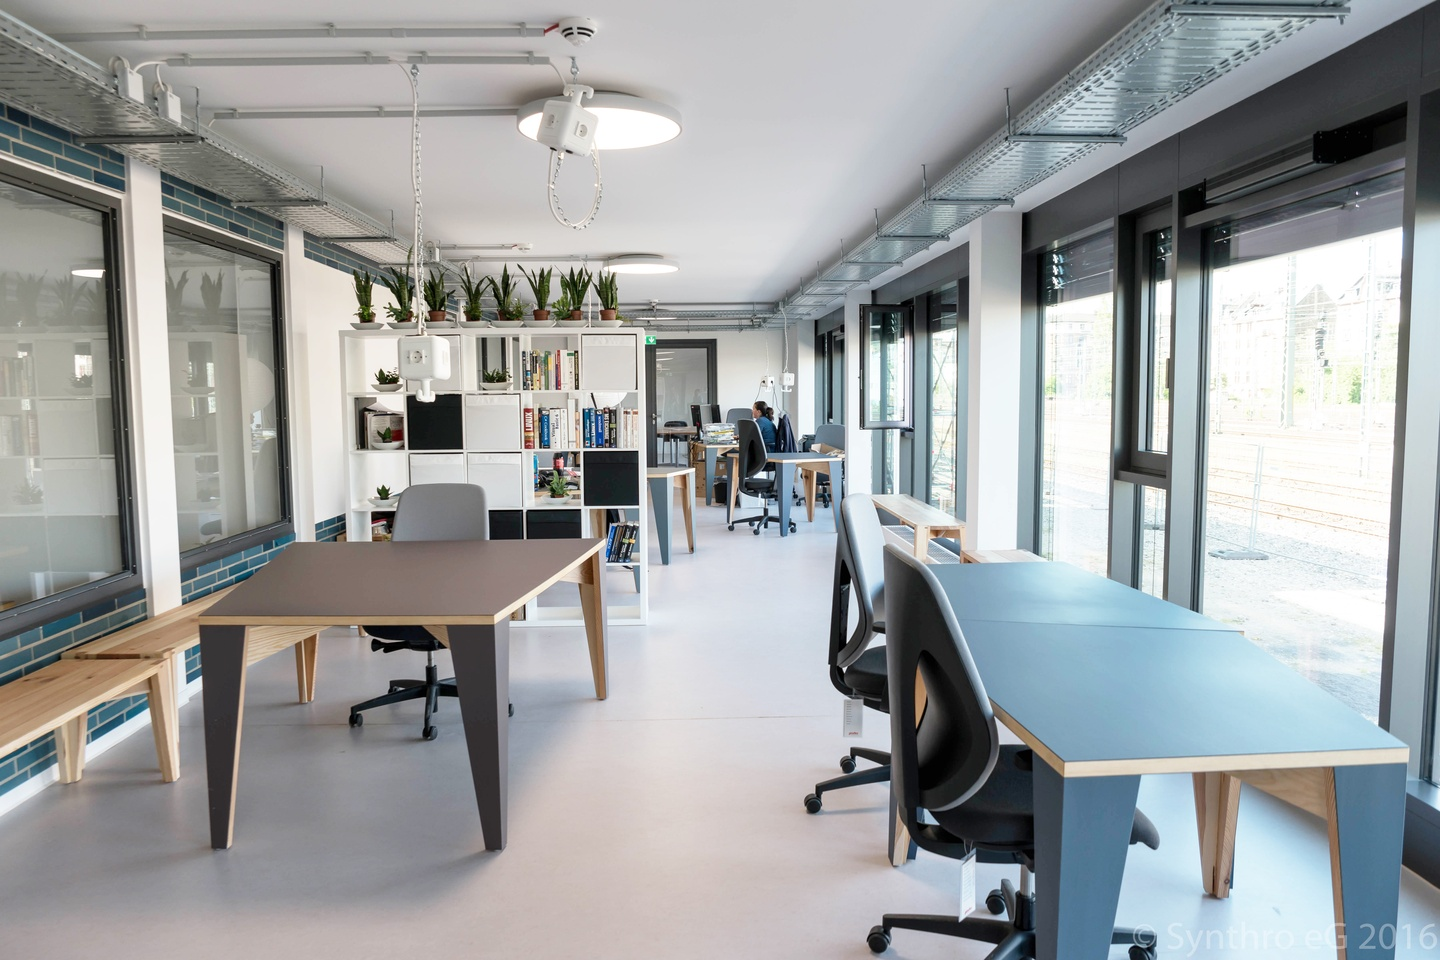 Frankfurt workshop spaces Coworking space Coworking-M1 / Combination of different rooms image 2